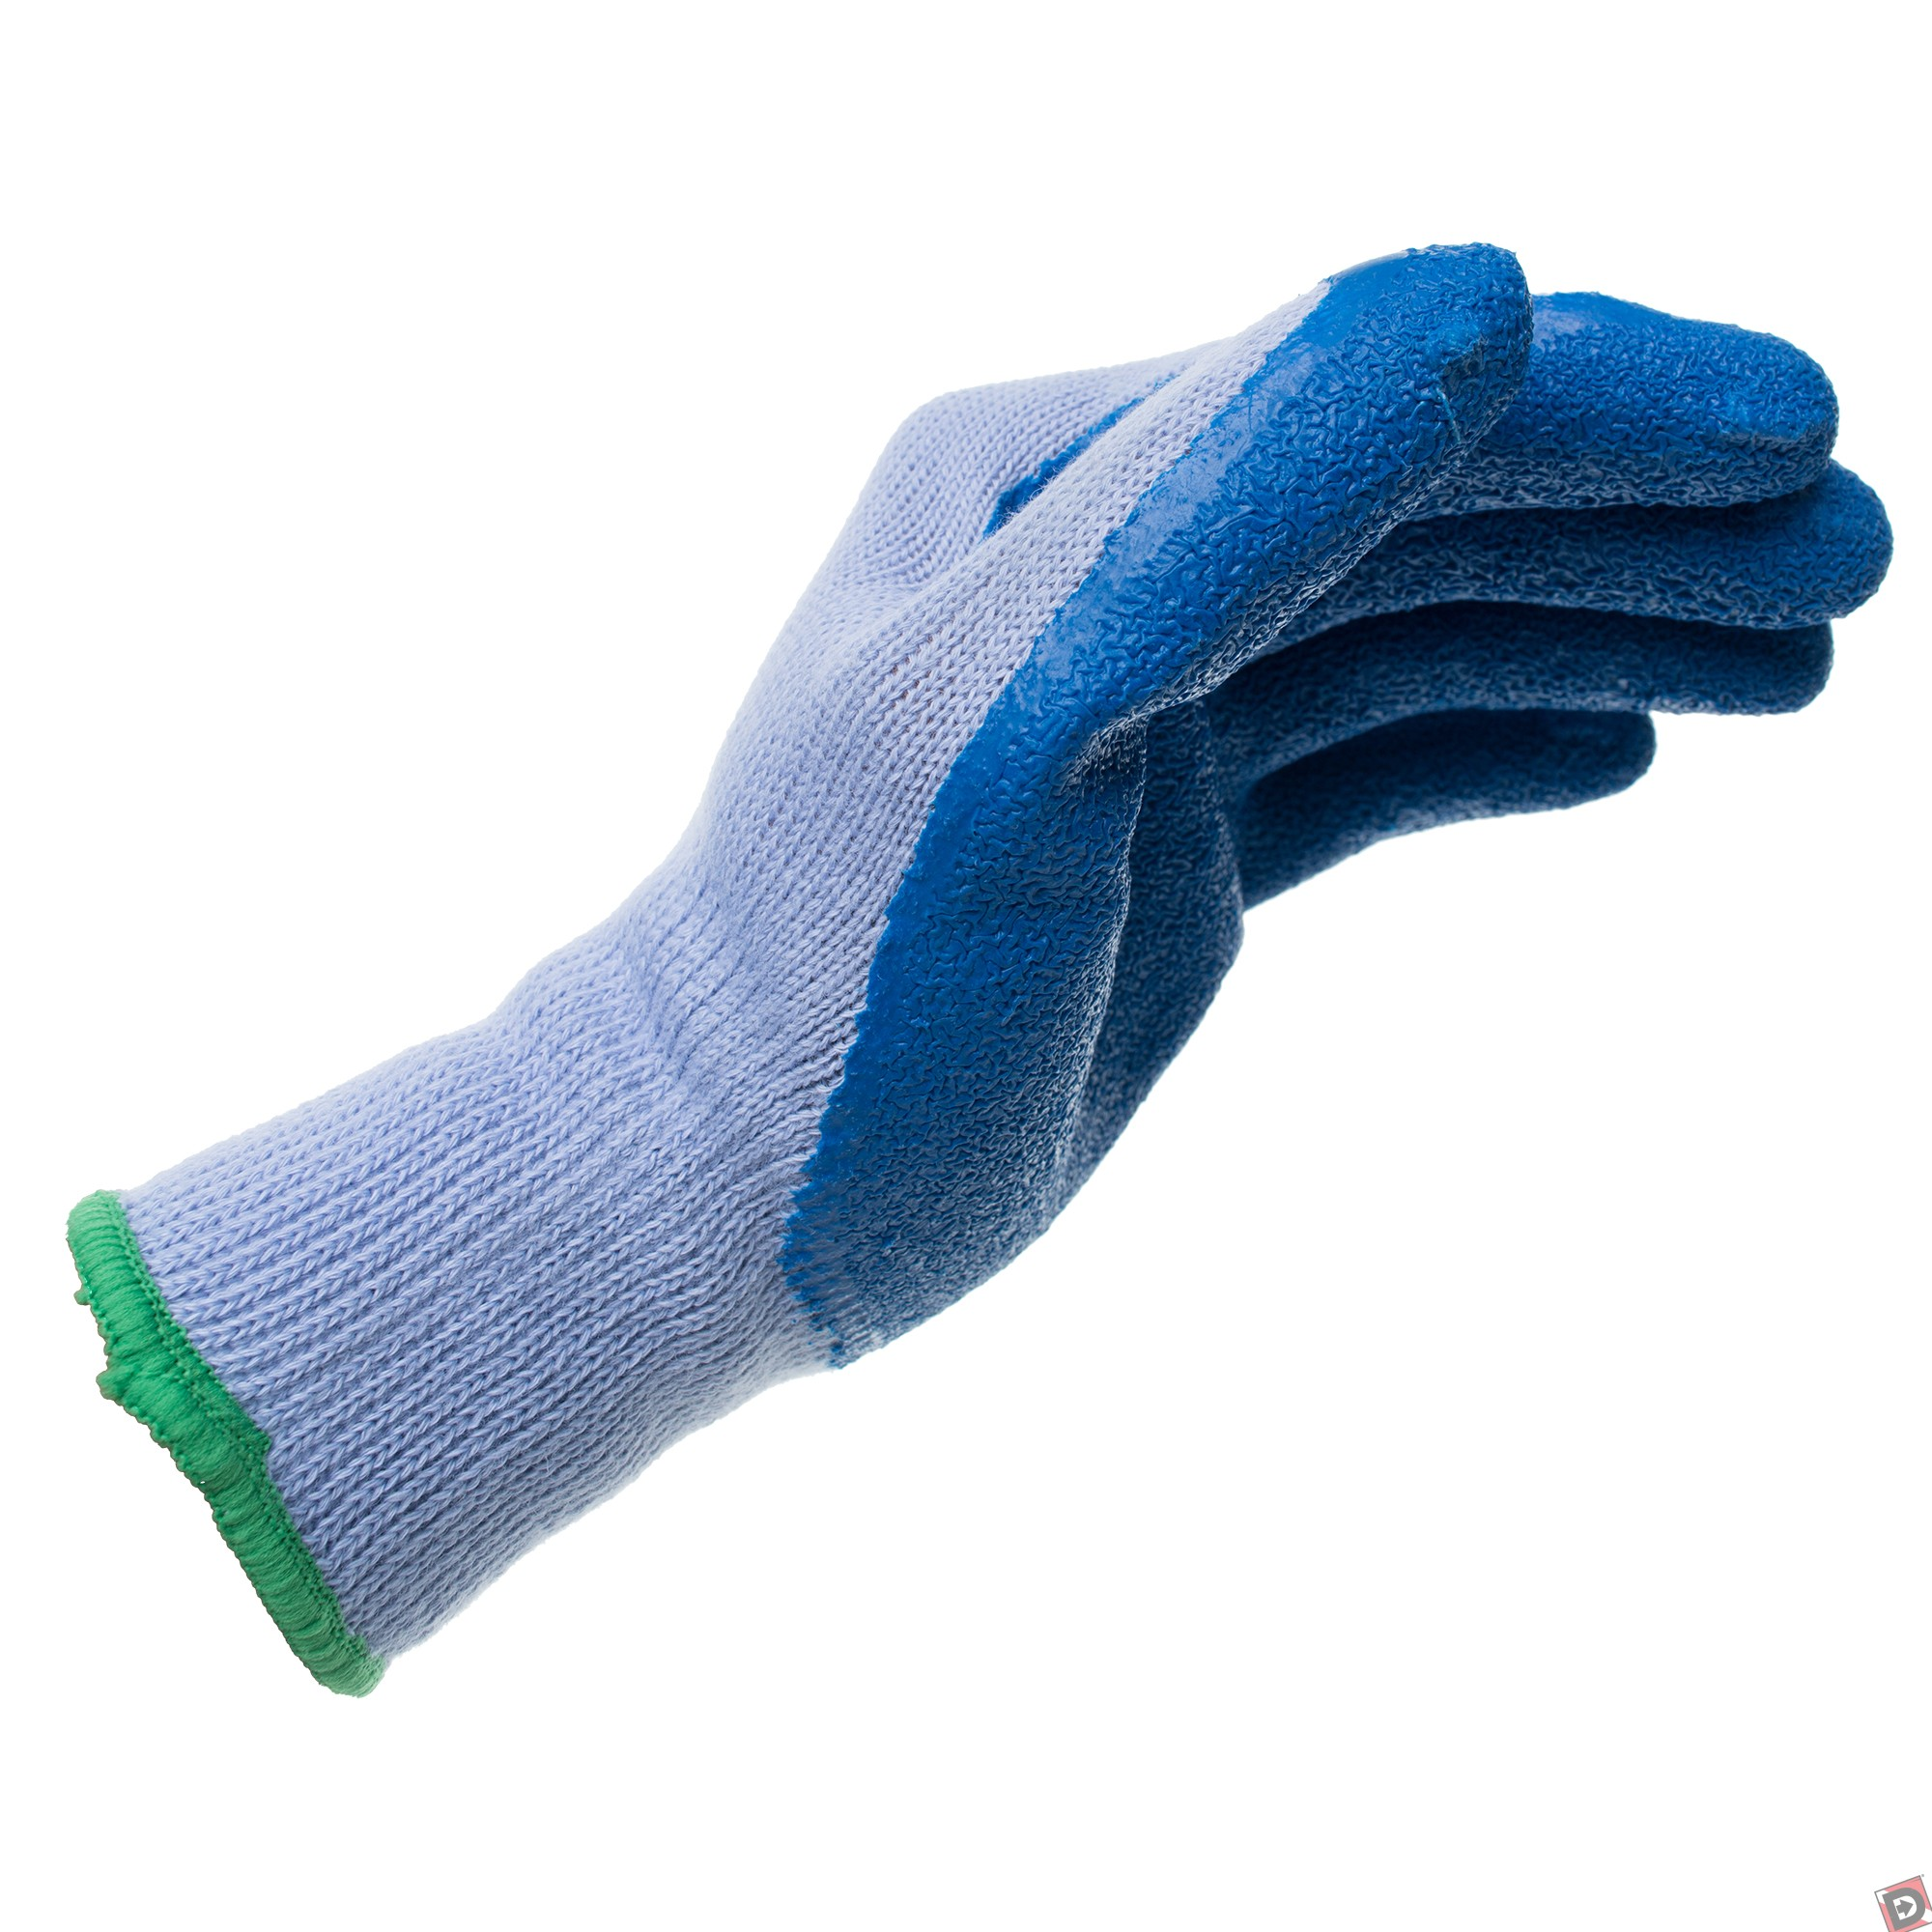 Lobster Gloves - Rubber Coated at Divers Direct